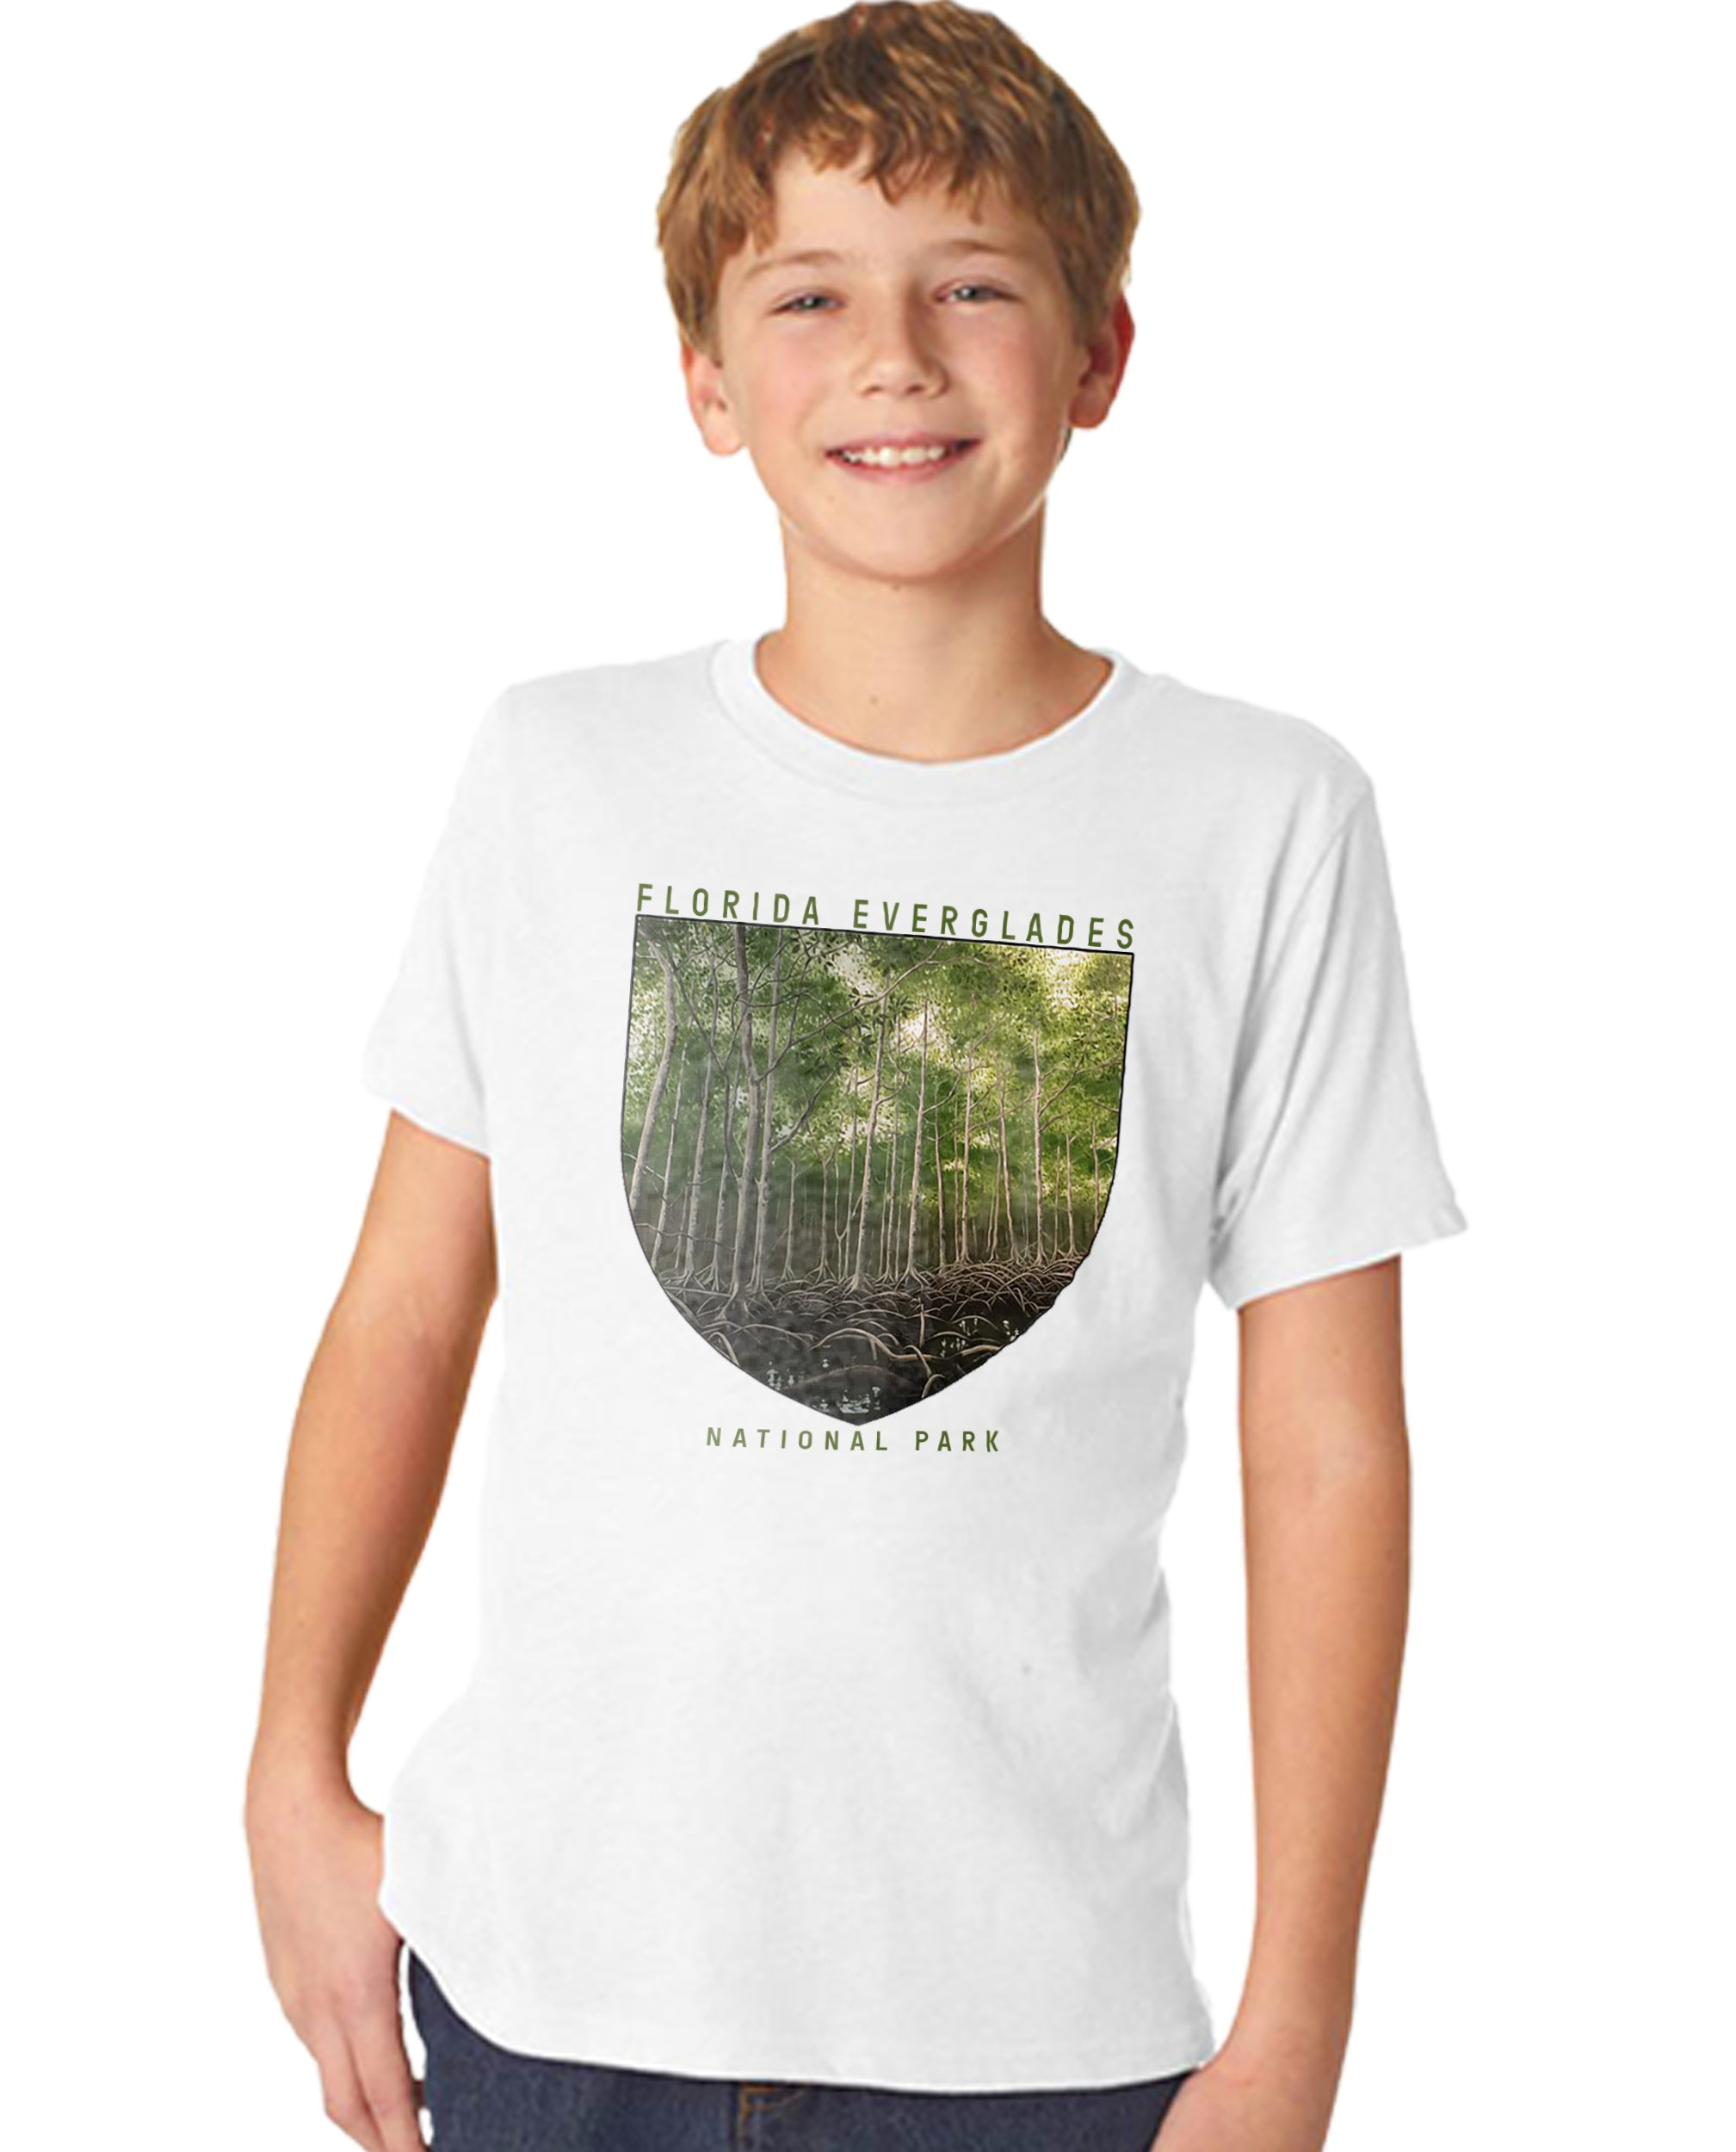 Florida Everglades National Park Boy's Premium Short Sleeve Crew